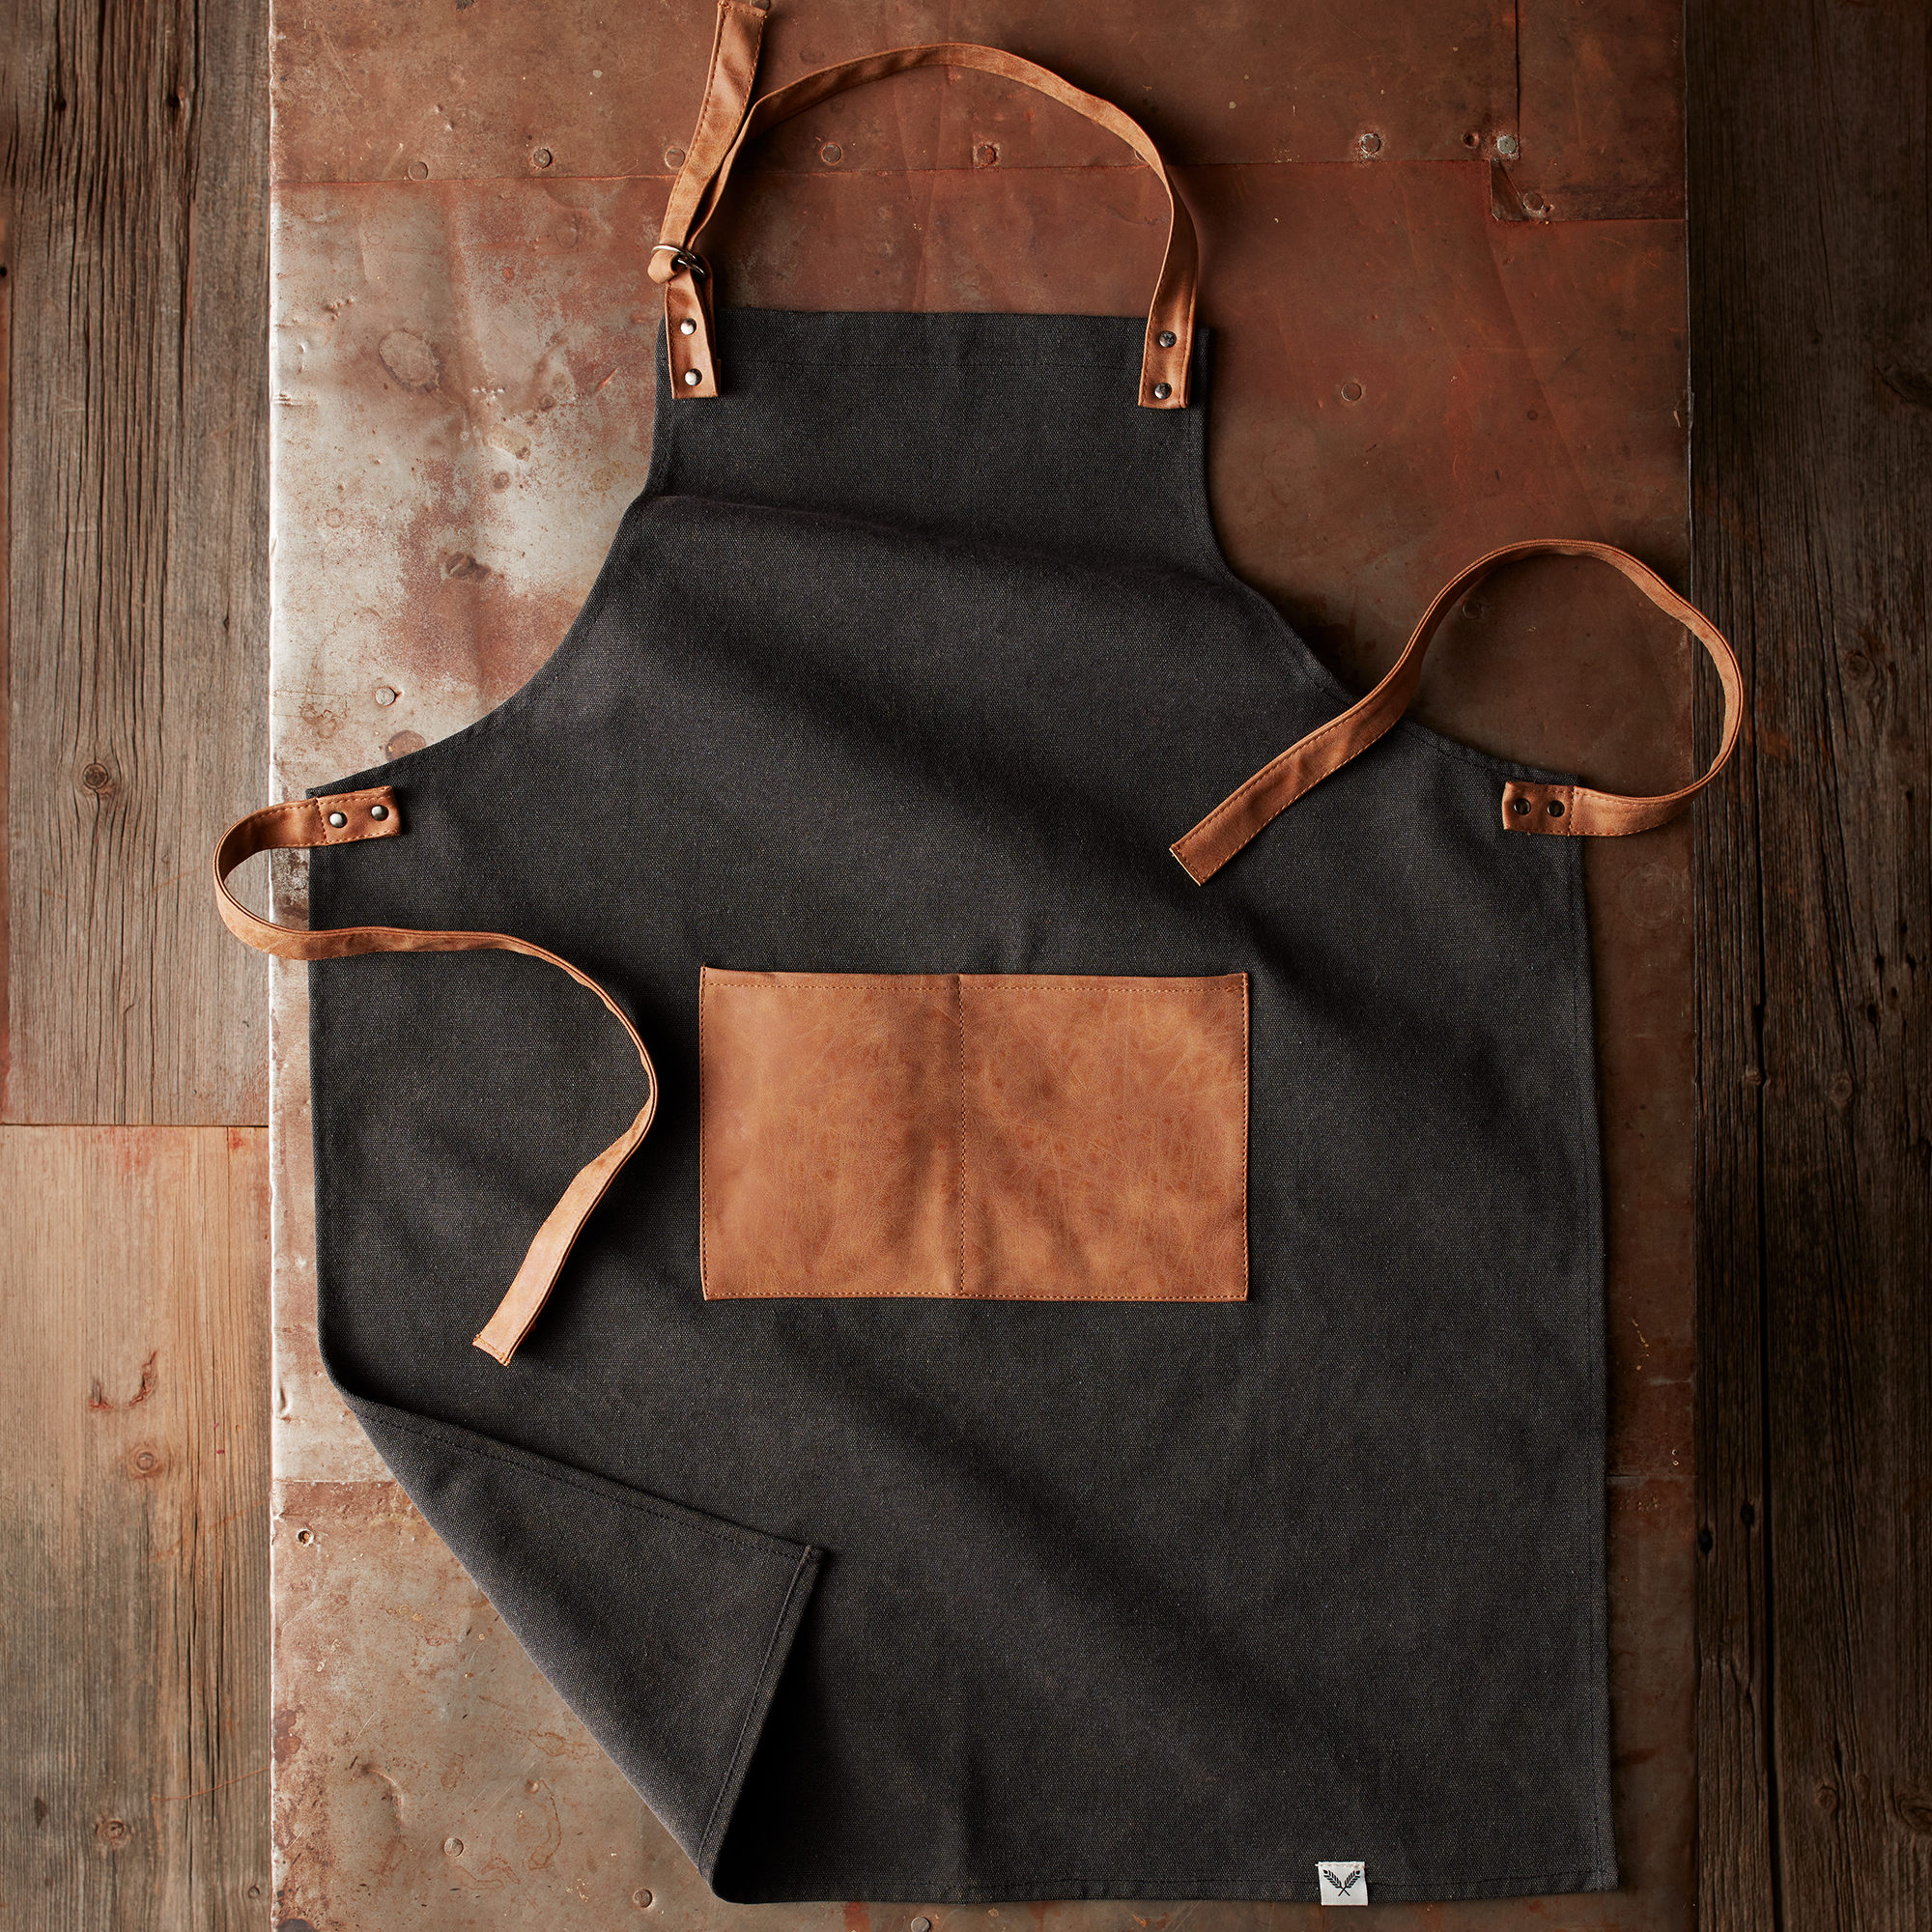 Made of durable black canvas with faux leather straps and pocket, this apron will keep your favorite grillmaster clean and stylish at every barbeque